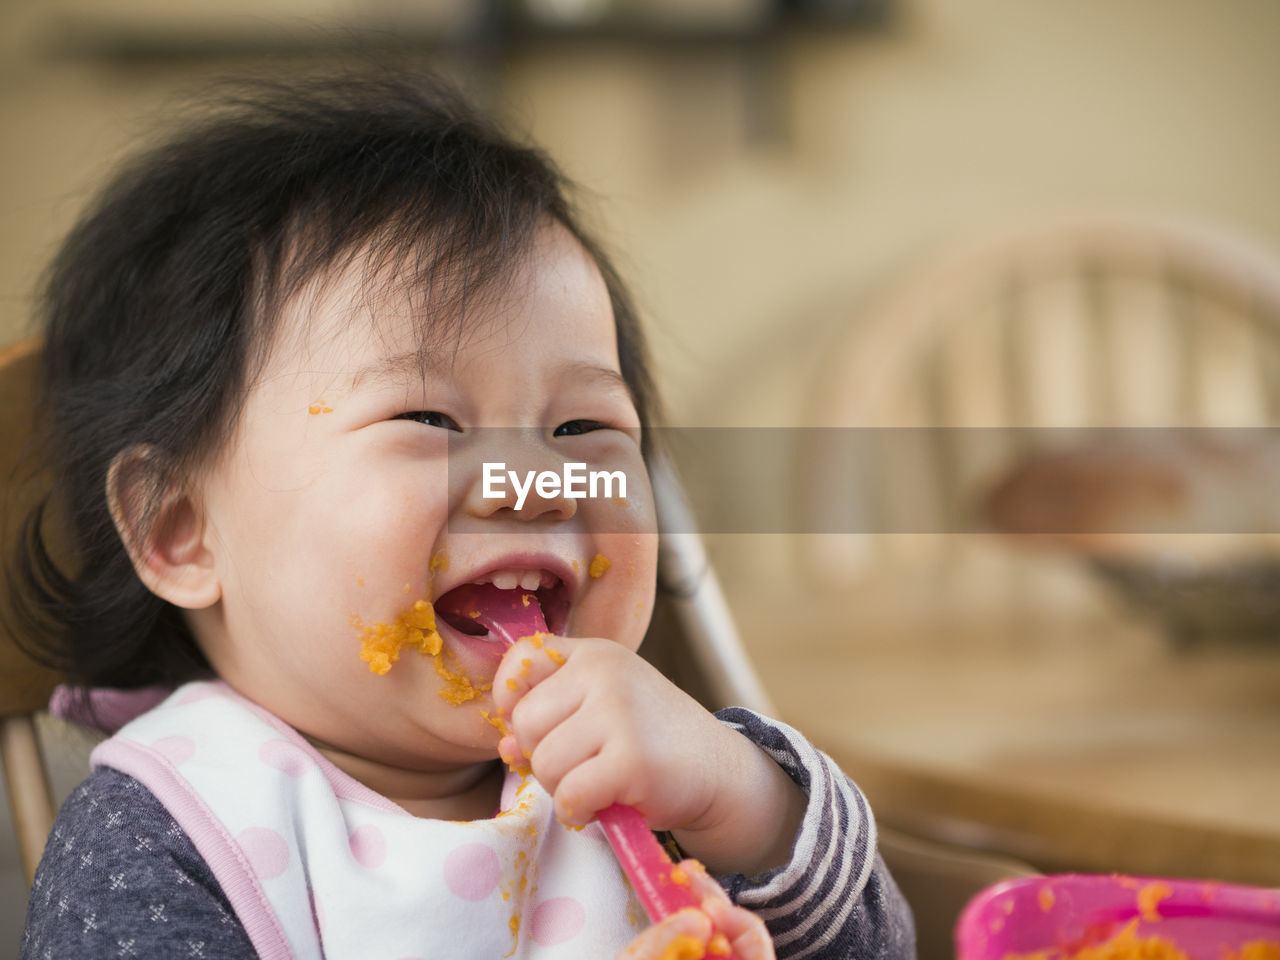 Close-up of cute baby girl eating mashed potatoes at home